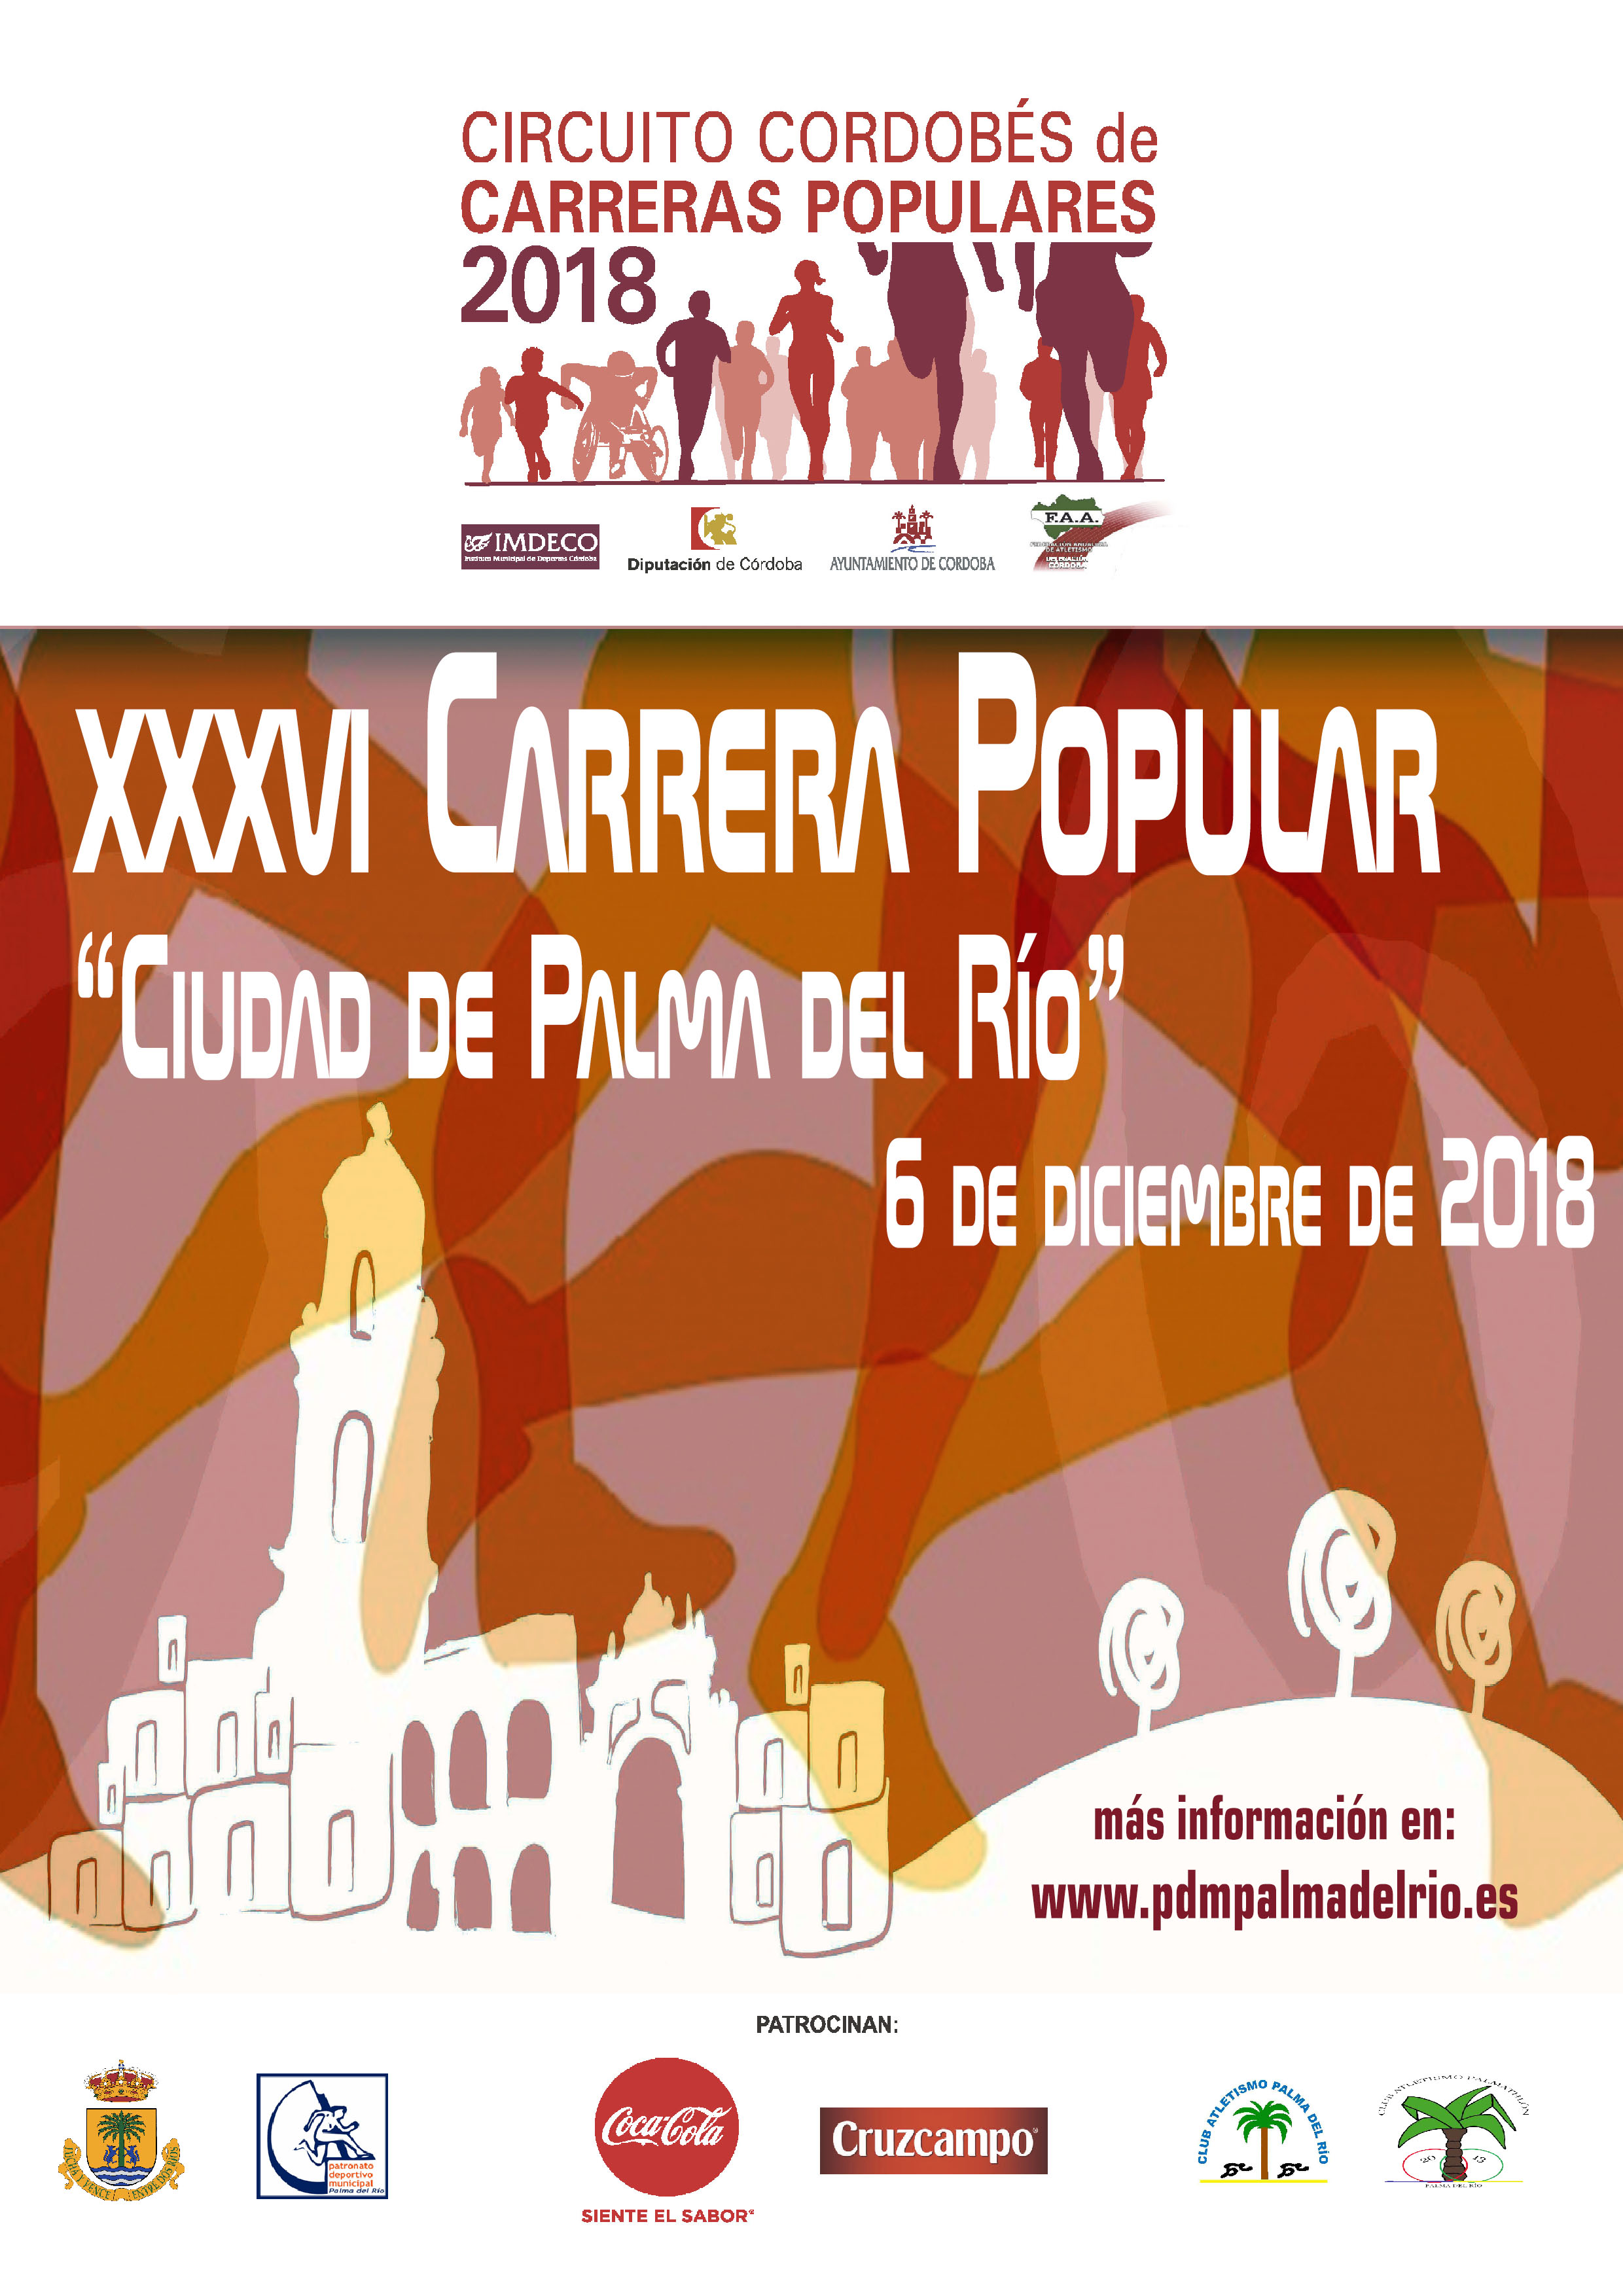 XXXVI CARRERA POPULAR